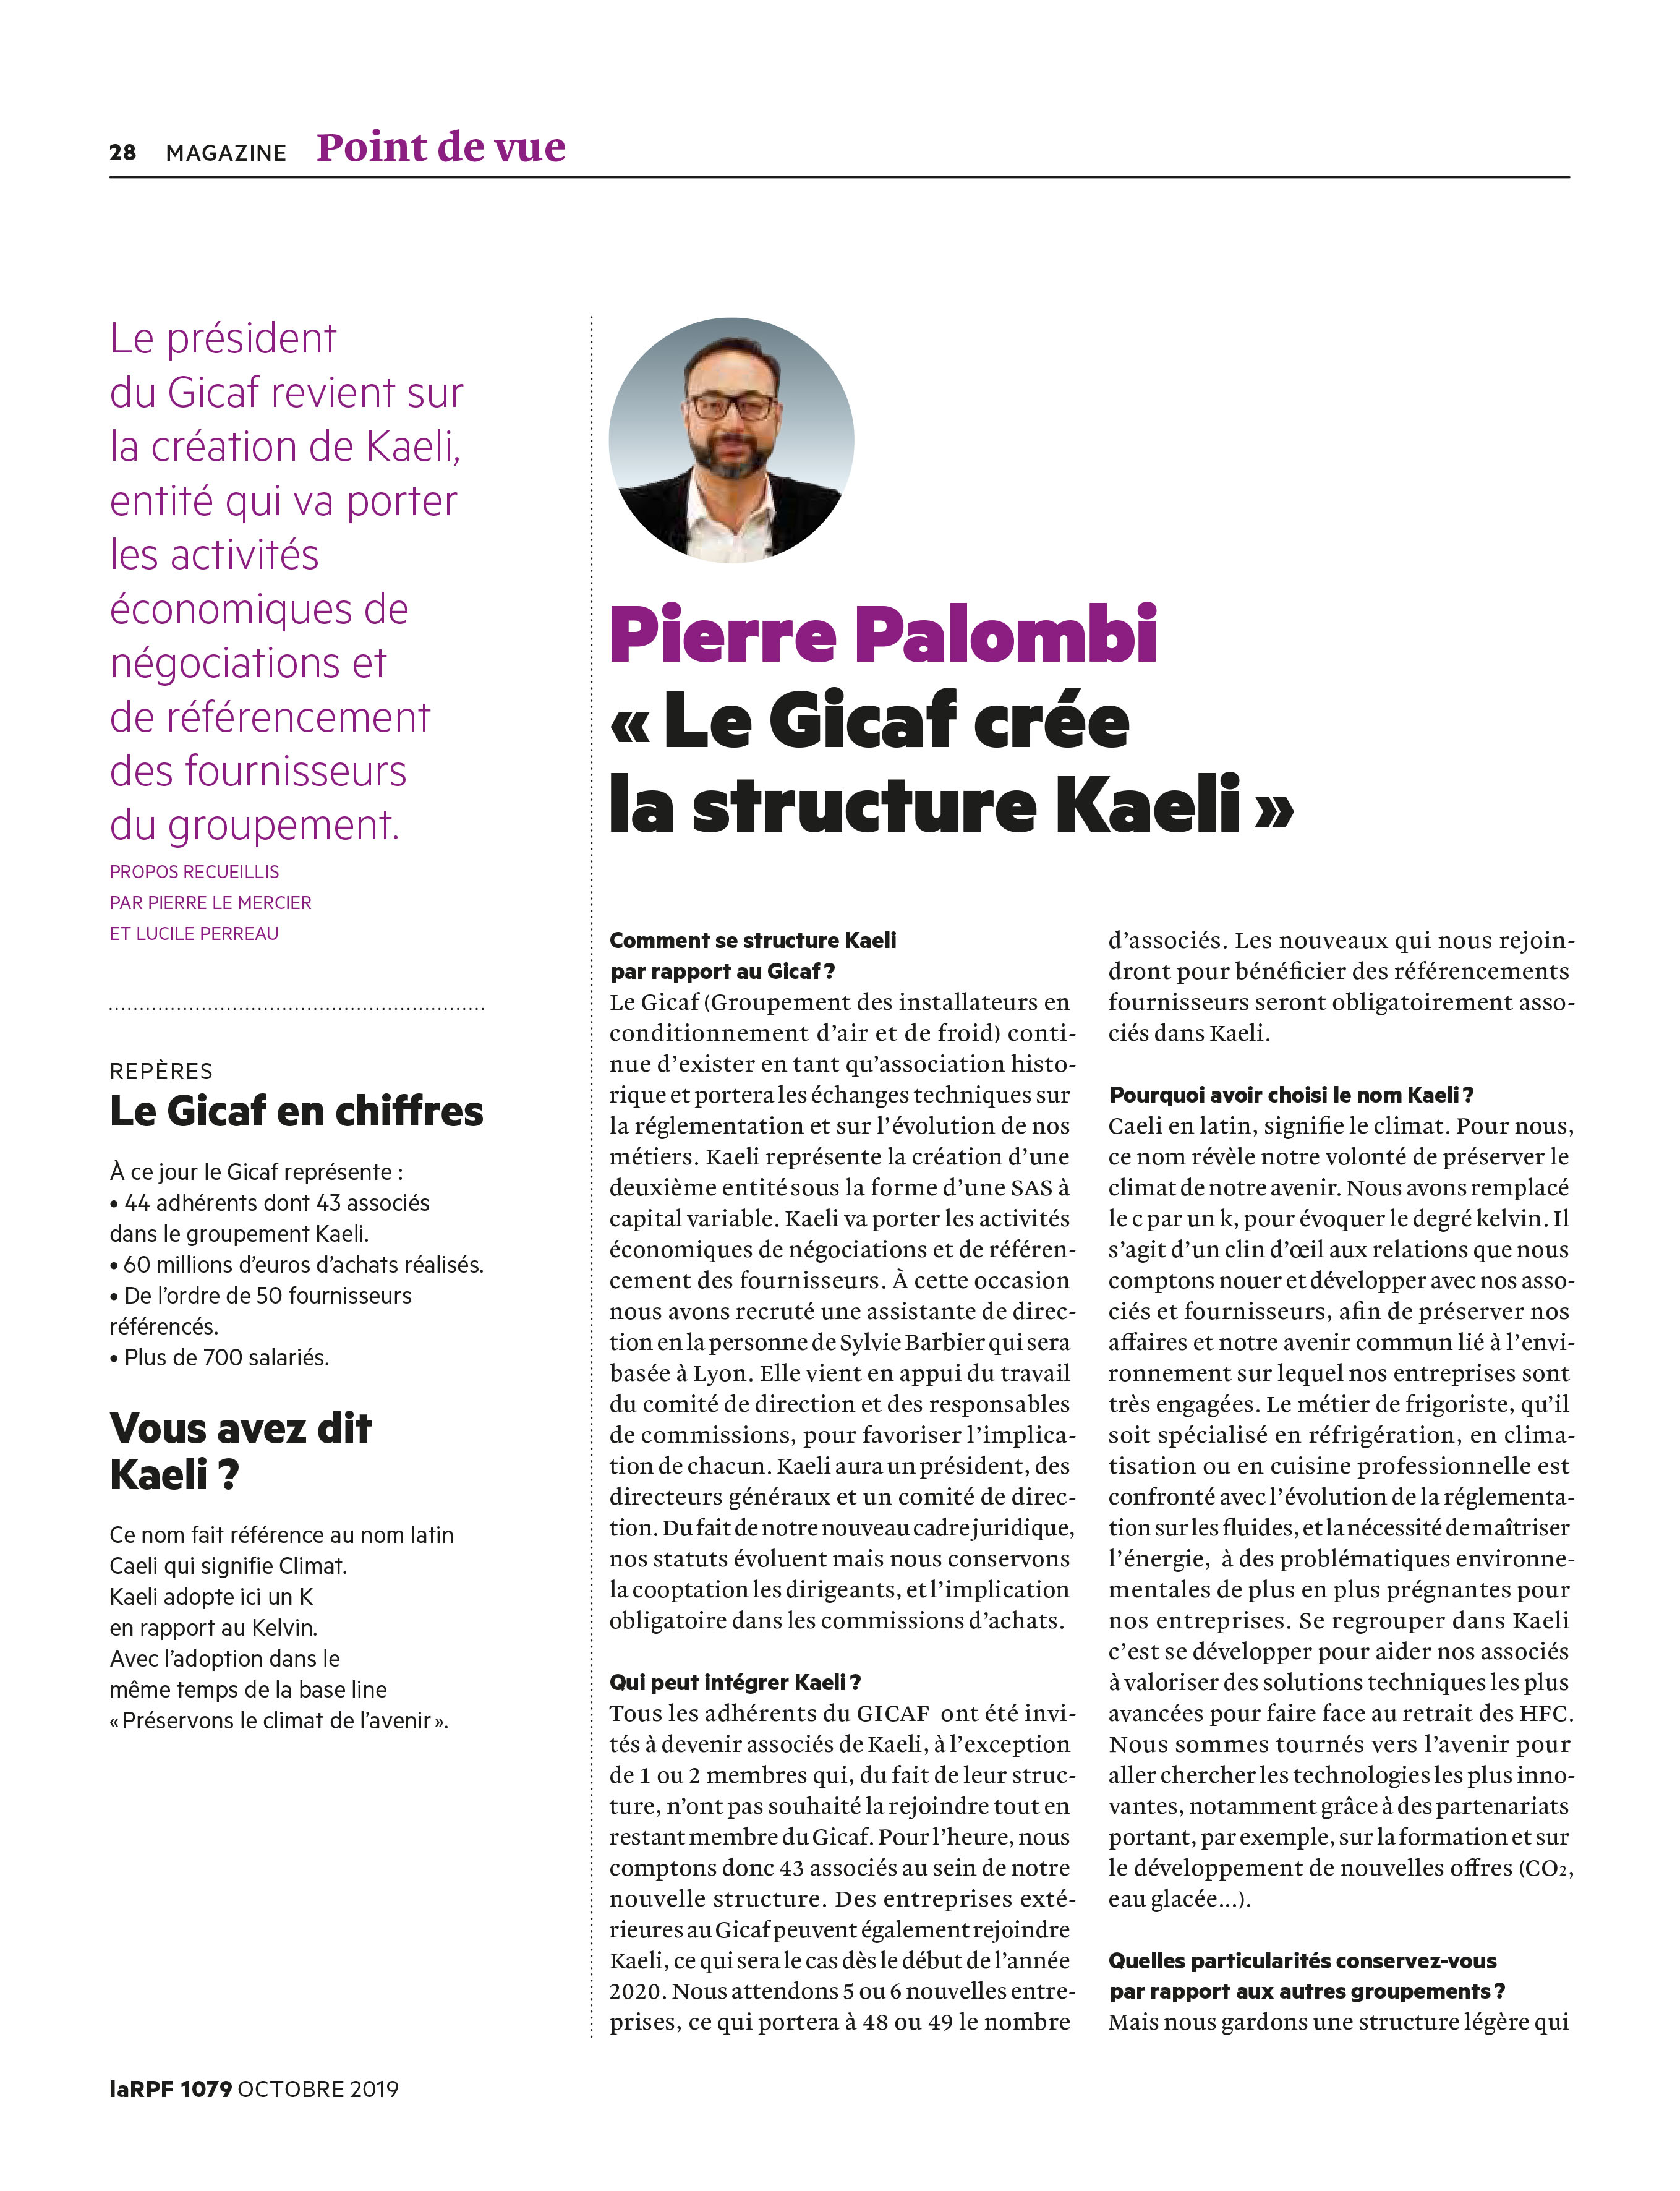 Article La RPF - KAELI